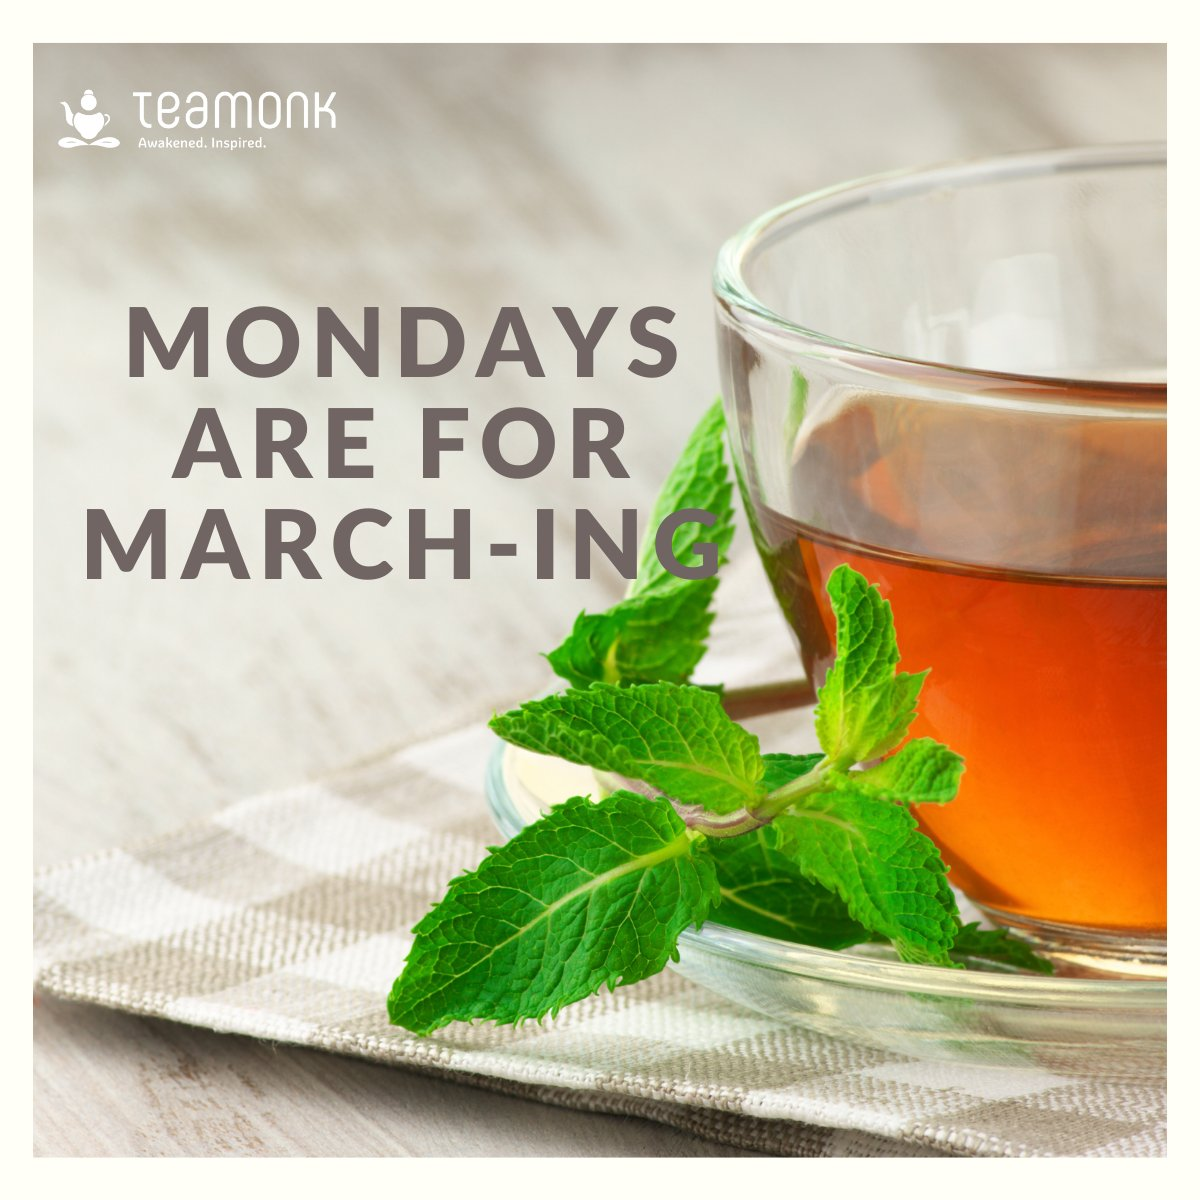 Let's get March going....and what better day than Monday. Black tea anyone?  #March #springiscoming #spring #march2021 #TeaMonk #detoxtea #Teatime #ayurveda #healthylifestyle #boostimmunity #Immunity #weatherchange #wellness #Tea #tealovers #ayurvedalifestyle #WhatIsInYourTeaBag